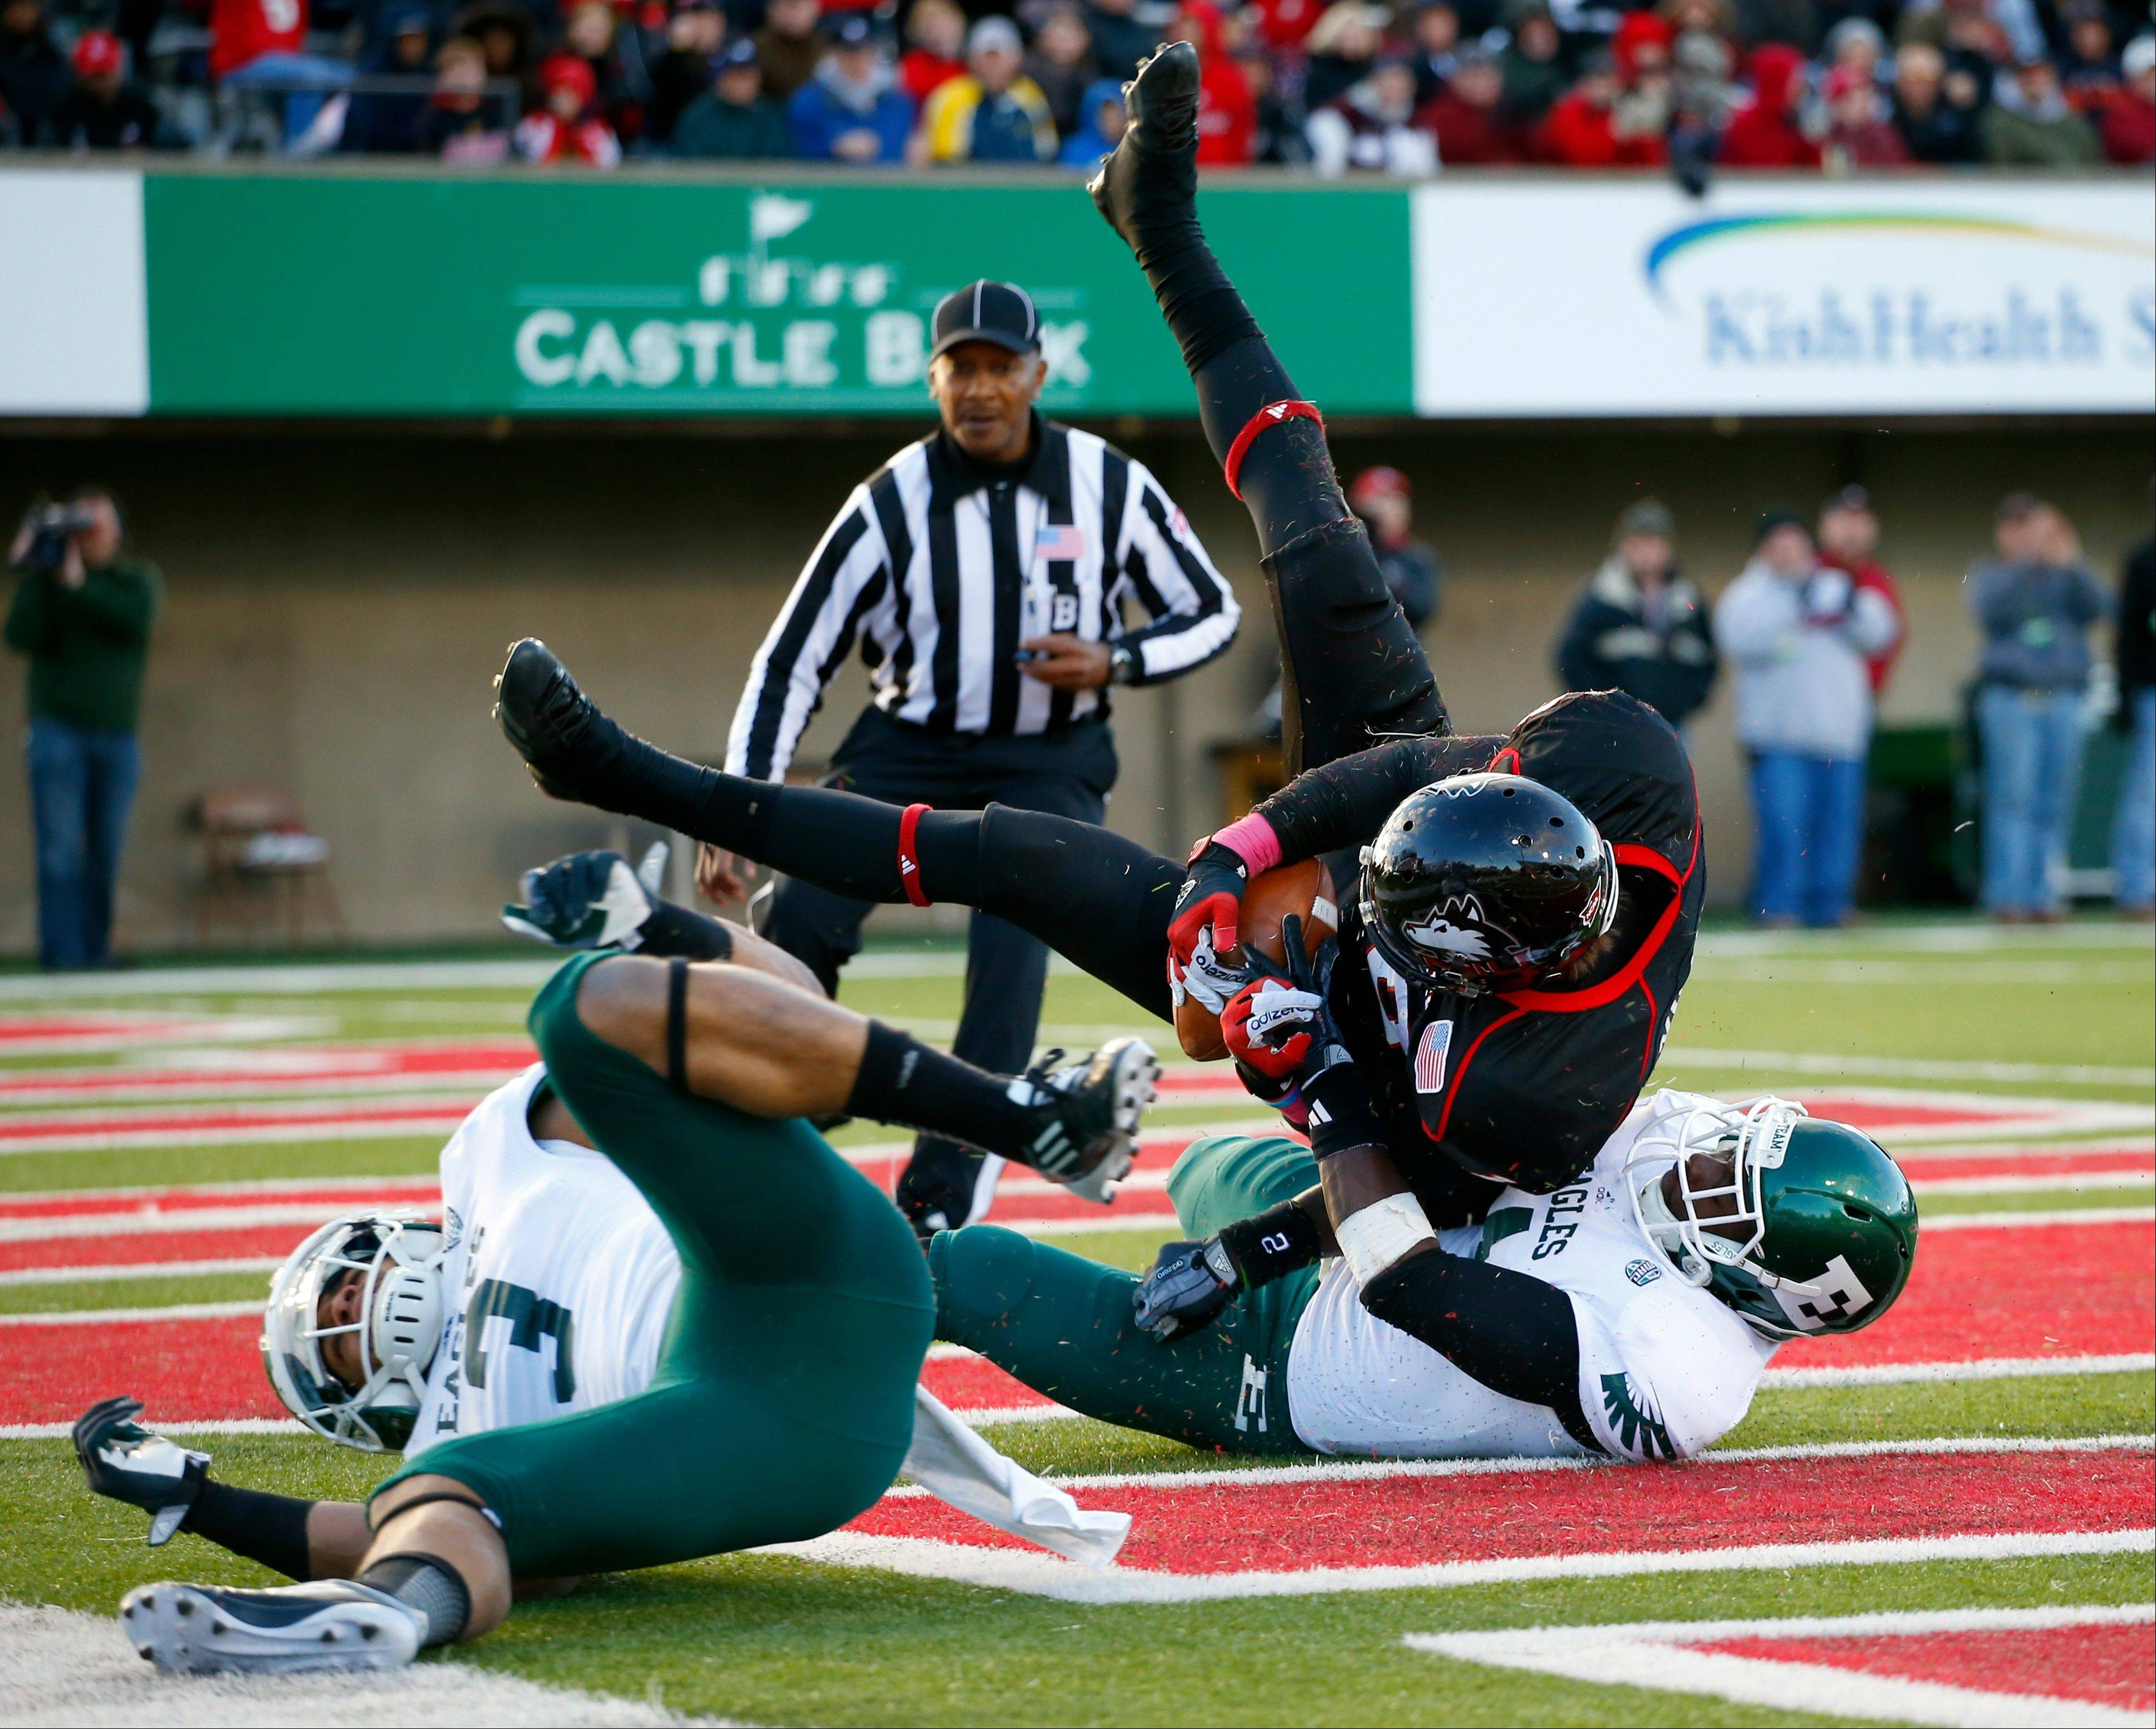 Northern Illinois linebacker Bobby Jones IV, center, rolls over Eastern Michigan defensive back Willie Creear, right, as teammate Donald Coleman, left, rolls away during the second half.